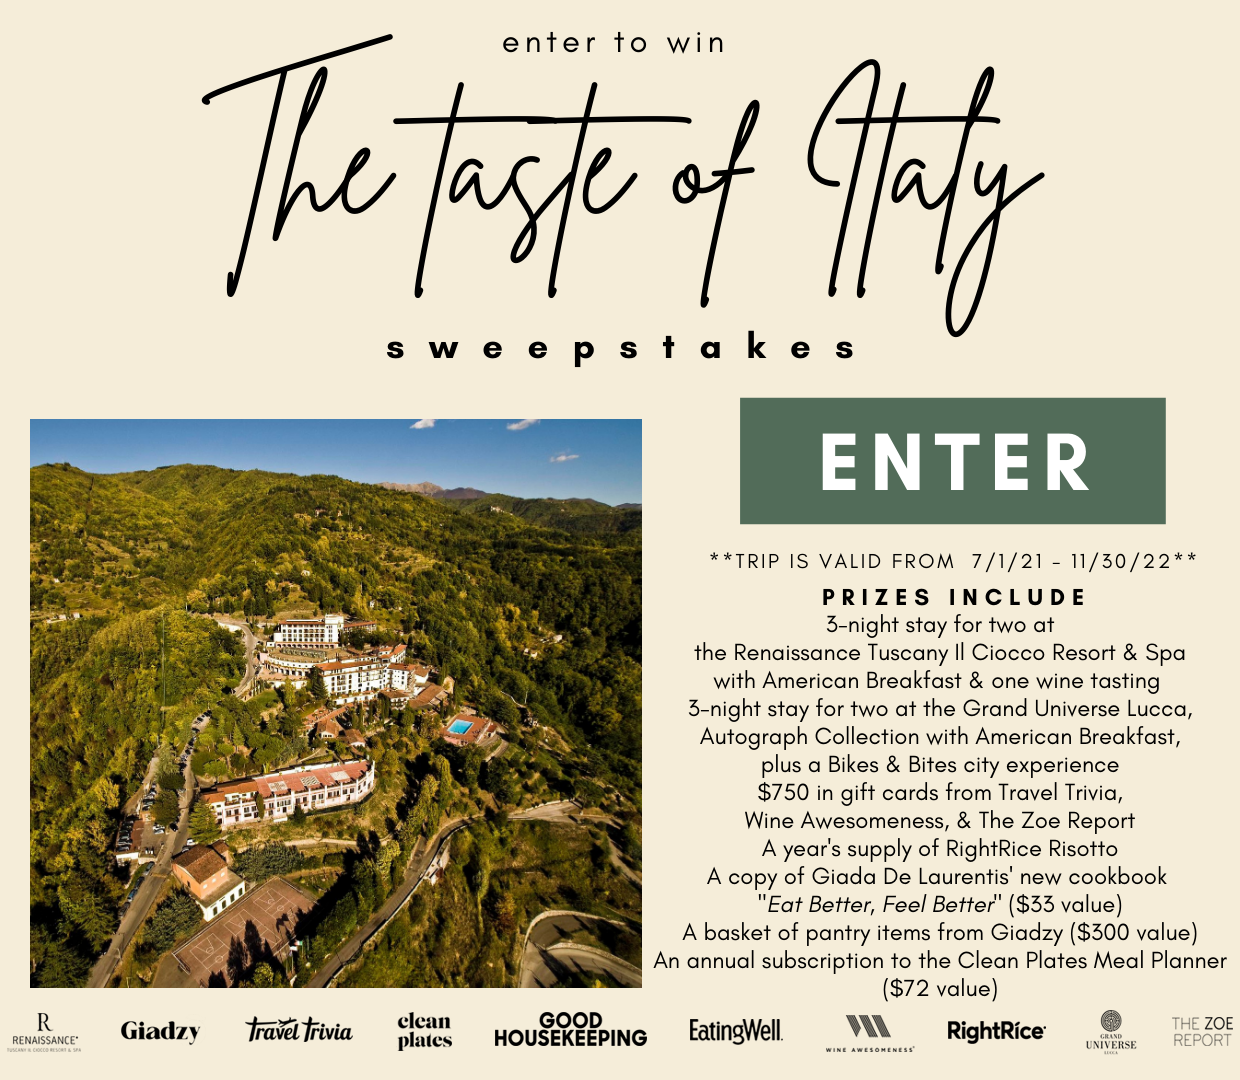 Enter for a chance to win: A 3-night stay for two at the Renaissance Tuscany Il Ciocco Resort & Spa with american breakfast and one (1) wine tasting; A 3-night stay for two at the, brand new, Grand Universe Lucca, Autograph Xollection with american breakfast; Plus a Bikes & Bites city experience, $750 in gift cards from Travel Trivia, Wine Awesomeness and The Zoe Report; A year's supply of creamy, dairy-free and protein-packed RightRice Risotto; A copy of Giada De Laurentis' new cookbook 'Eat Better, Feel Better' ($33 value); A basket of pantry items from Giadzy ($300 value), and an annual subscription to the Clean Plates Meal Planner ($72 value).